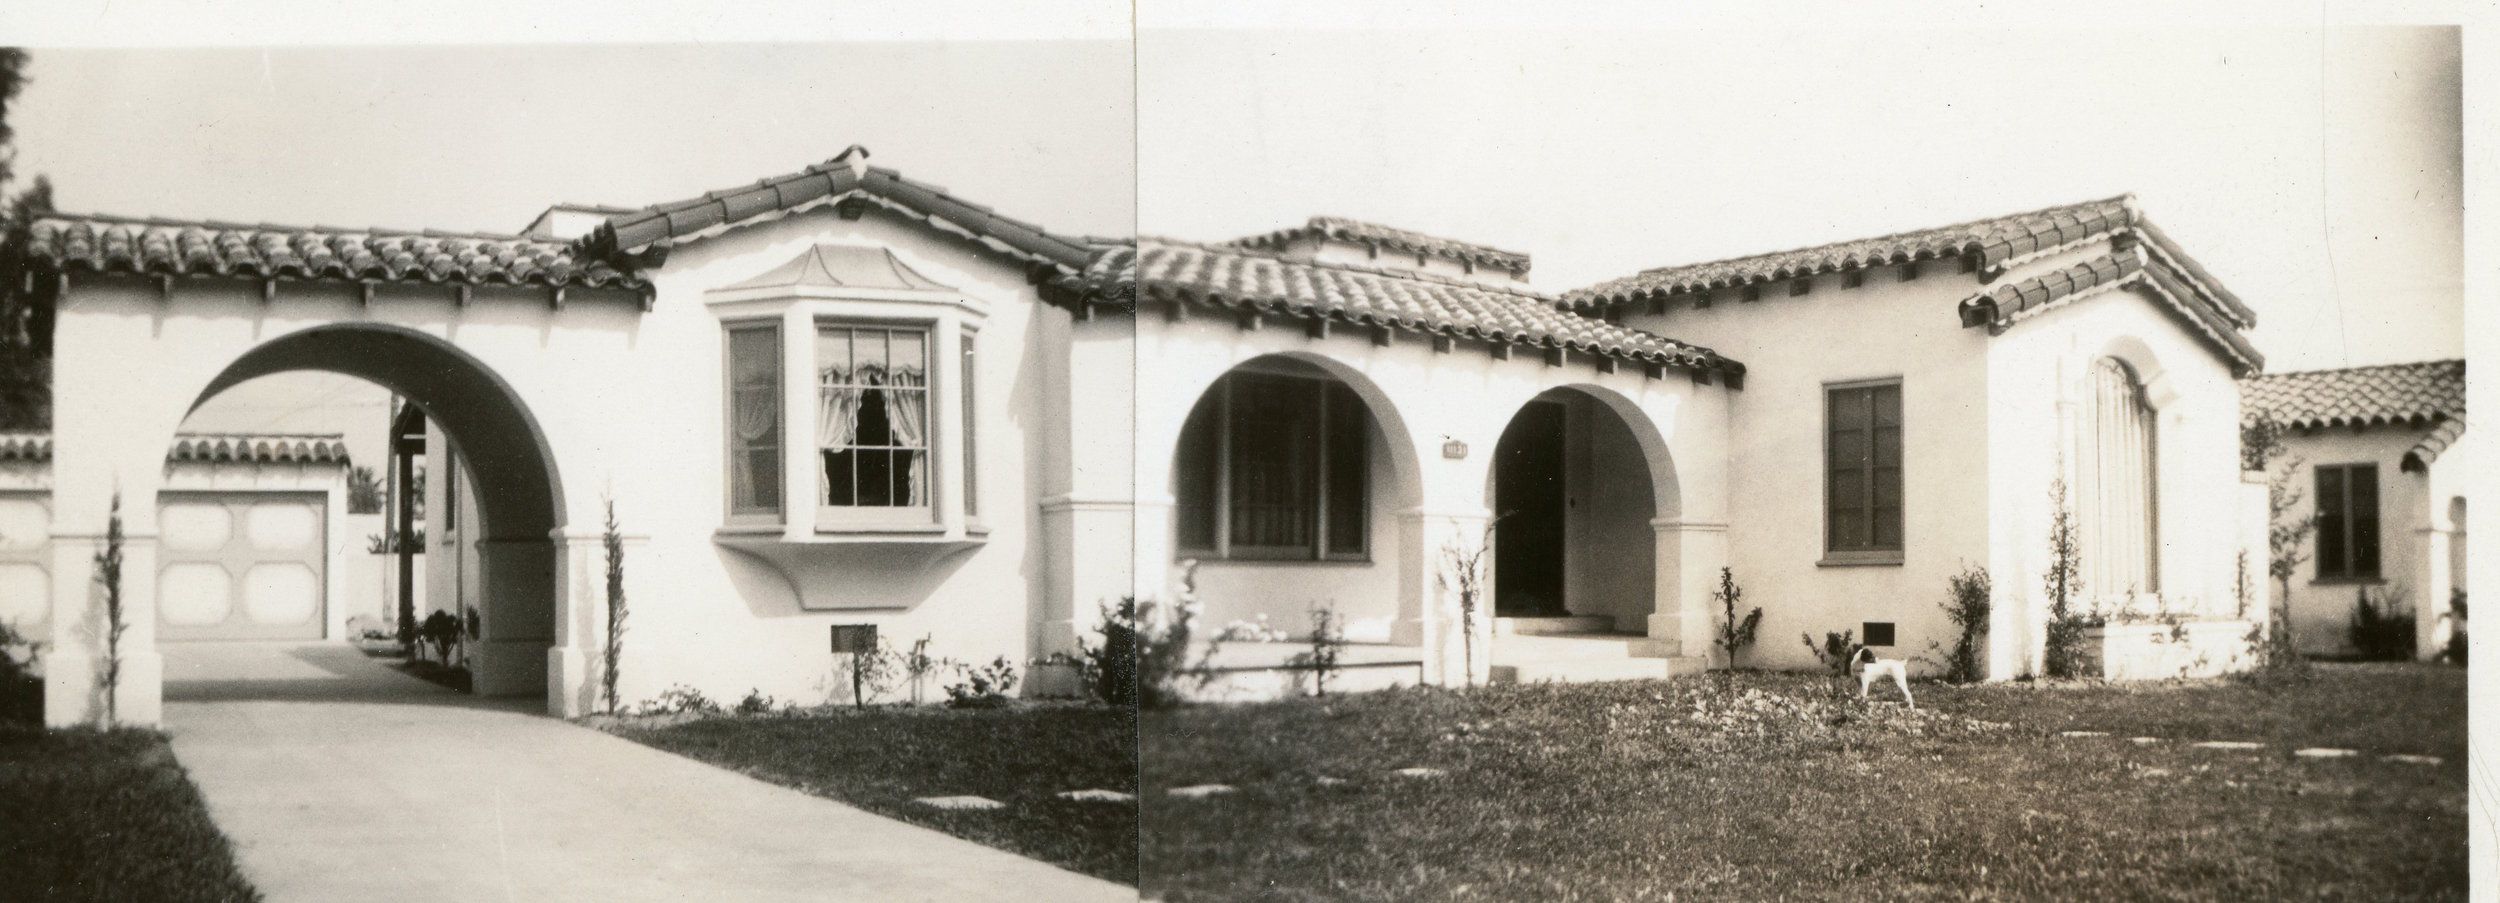 "1936 - The Newly Built ""Roadster House"""